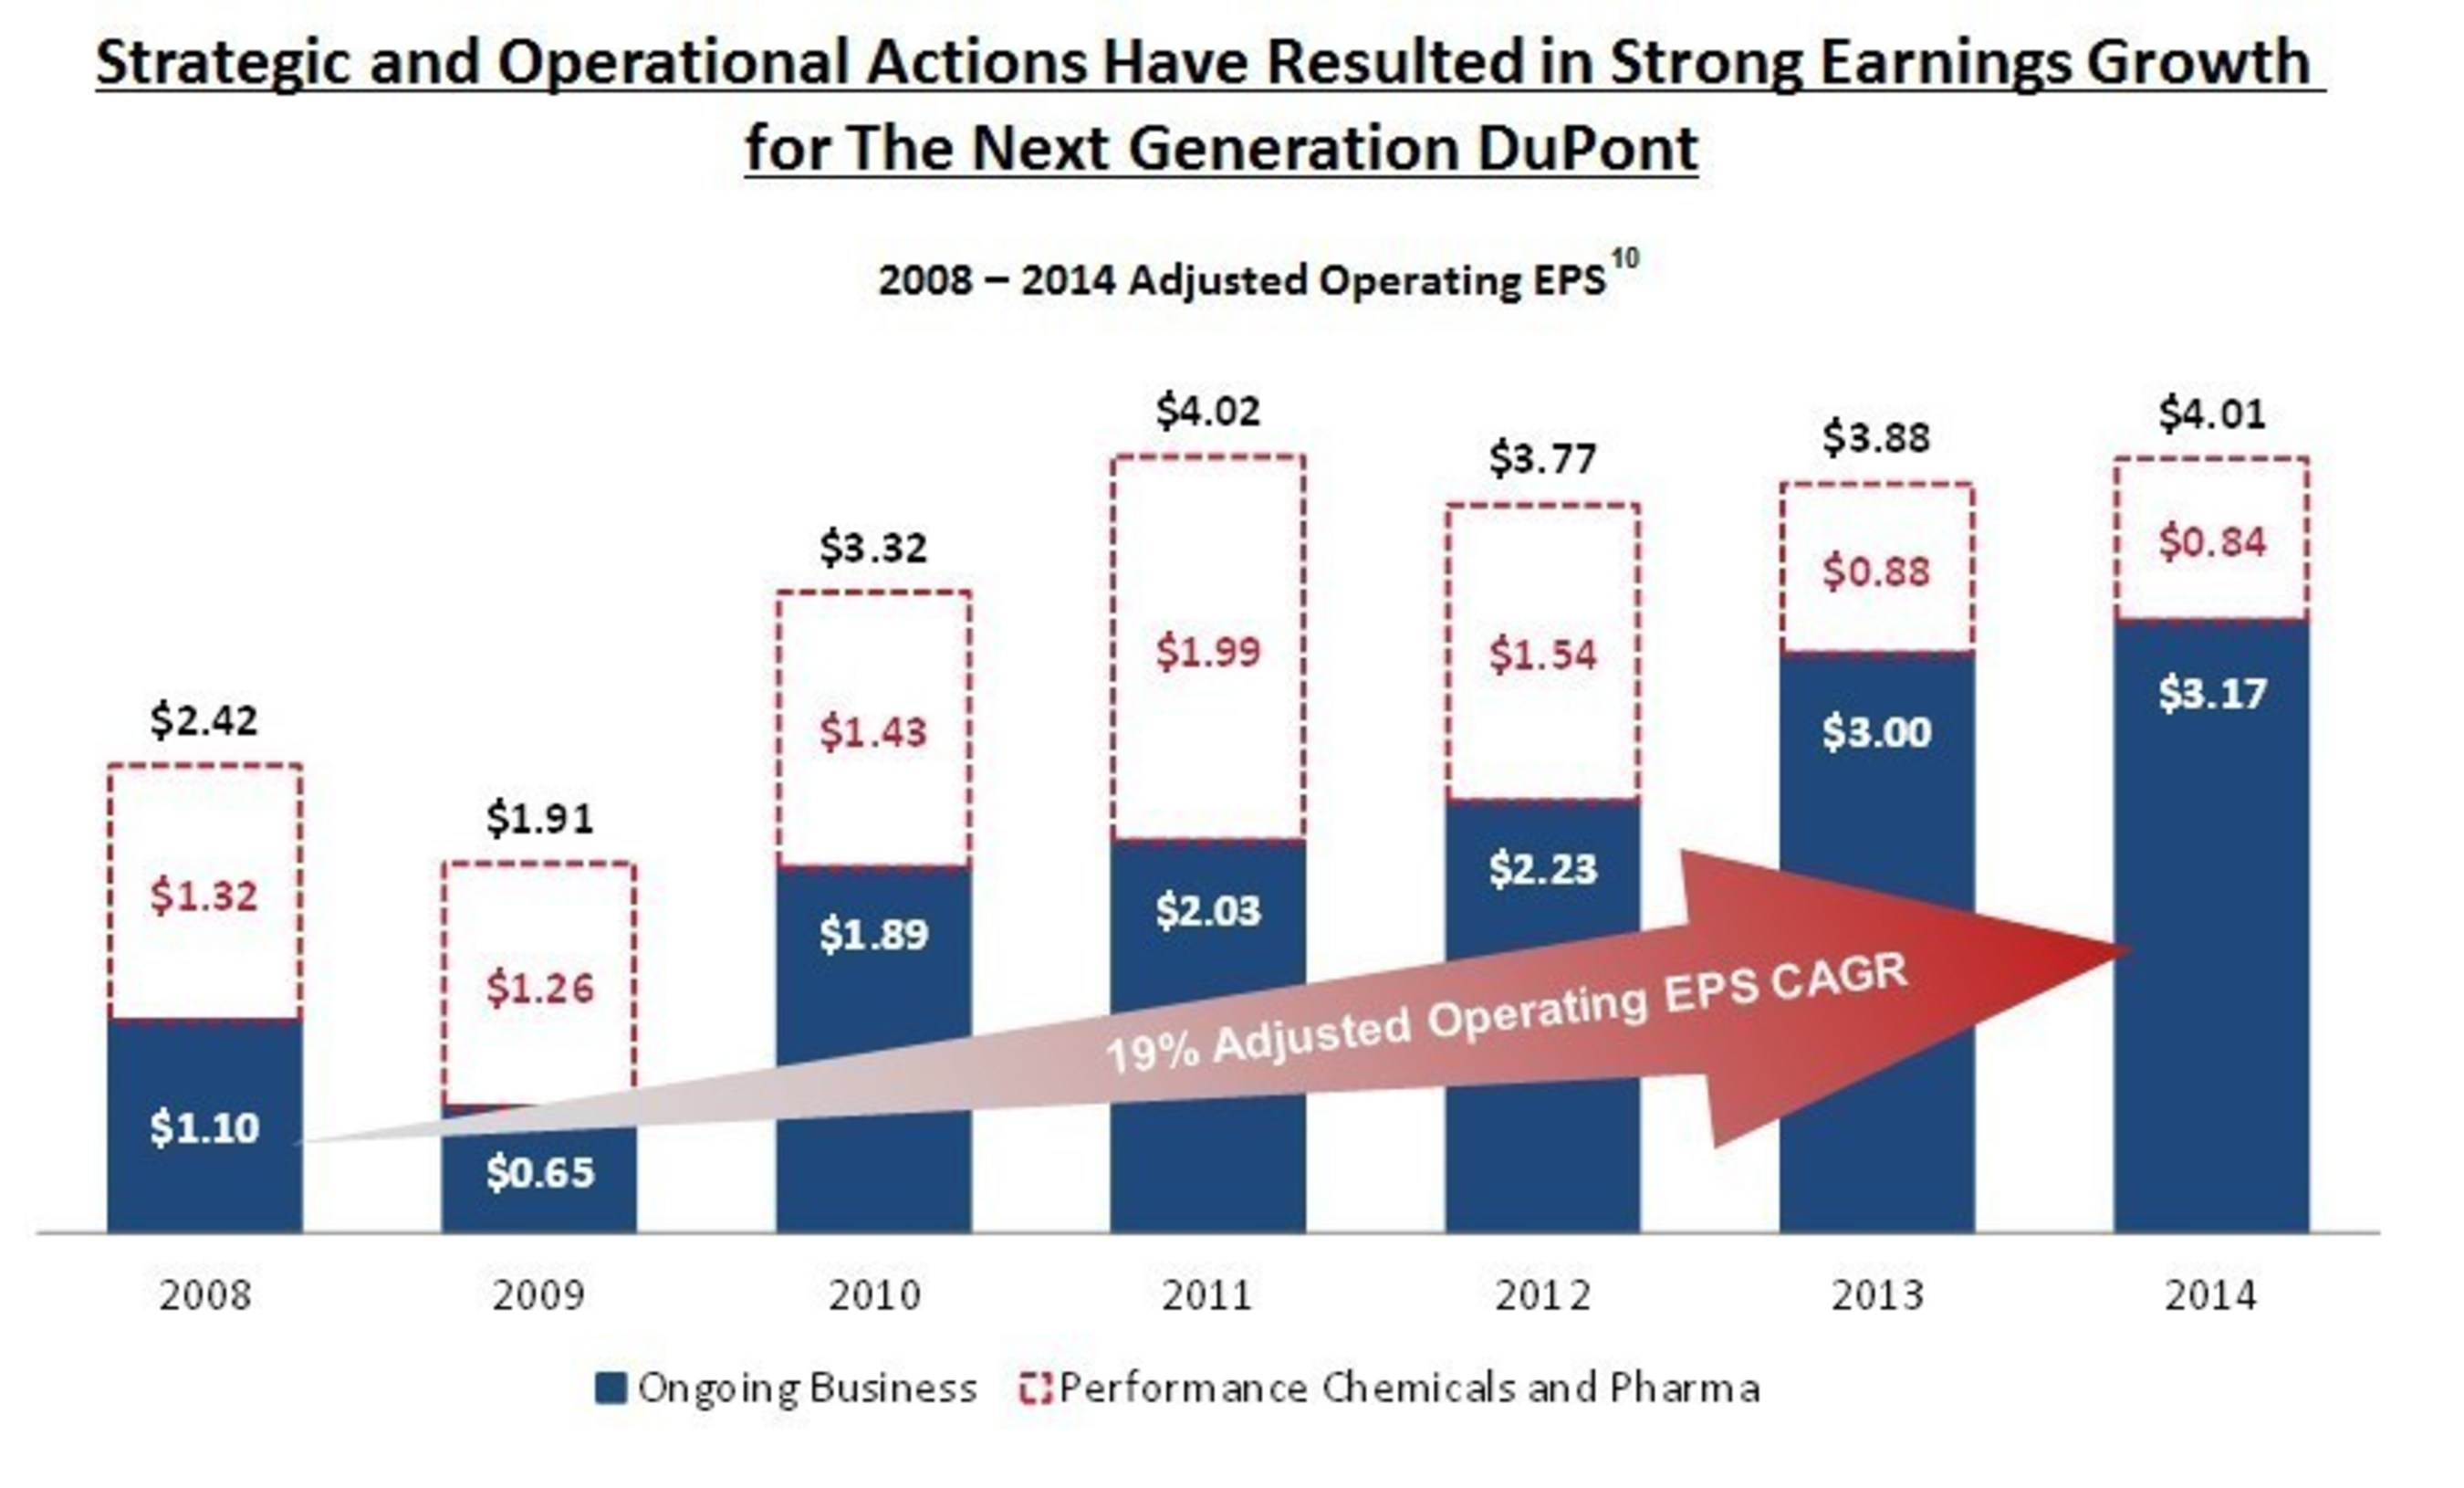 Strategic and Operational Actions Have Resulted in Strong Earnings Growth for The Next Generation DuPont